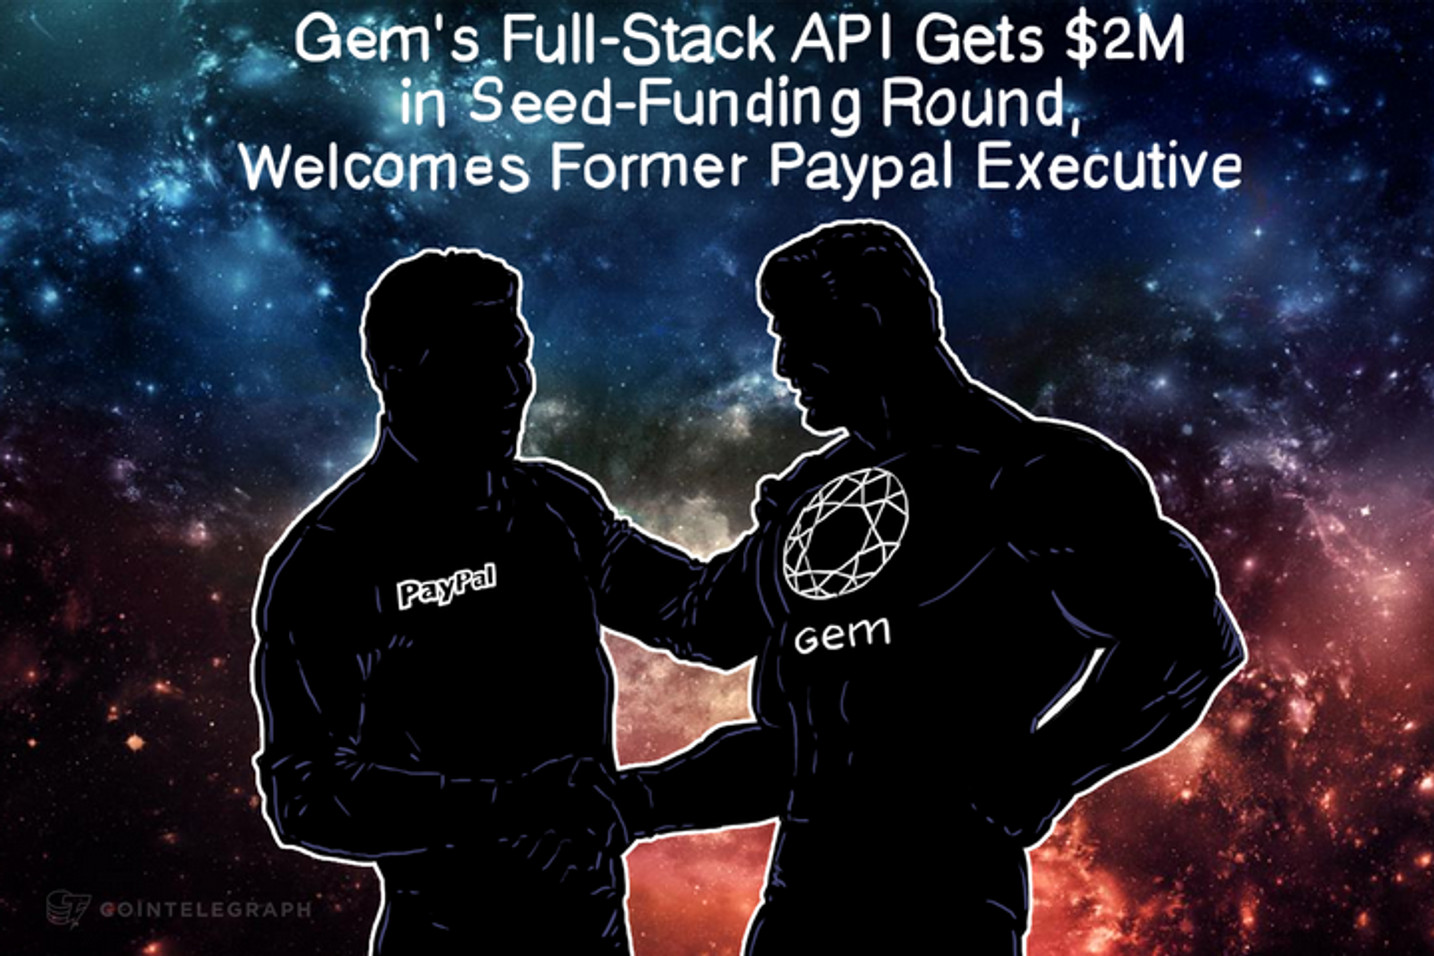 Gem's Full-Stack API Gets $2M in Seed-Funding Round, Welcomes Former Paypal Executive